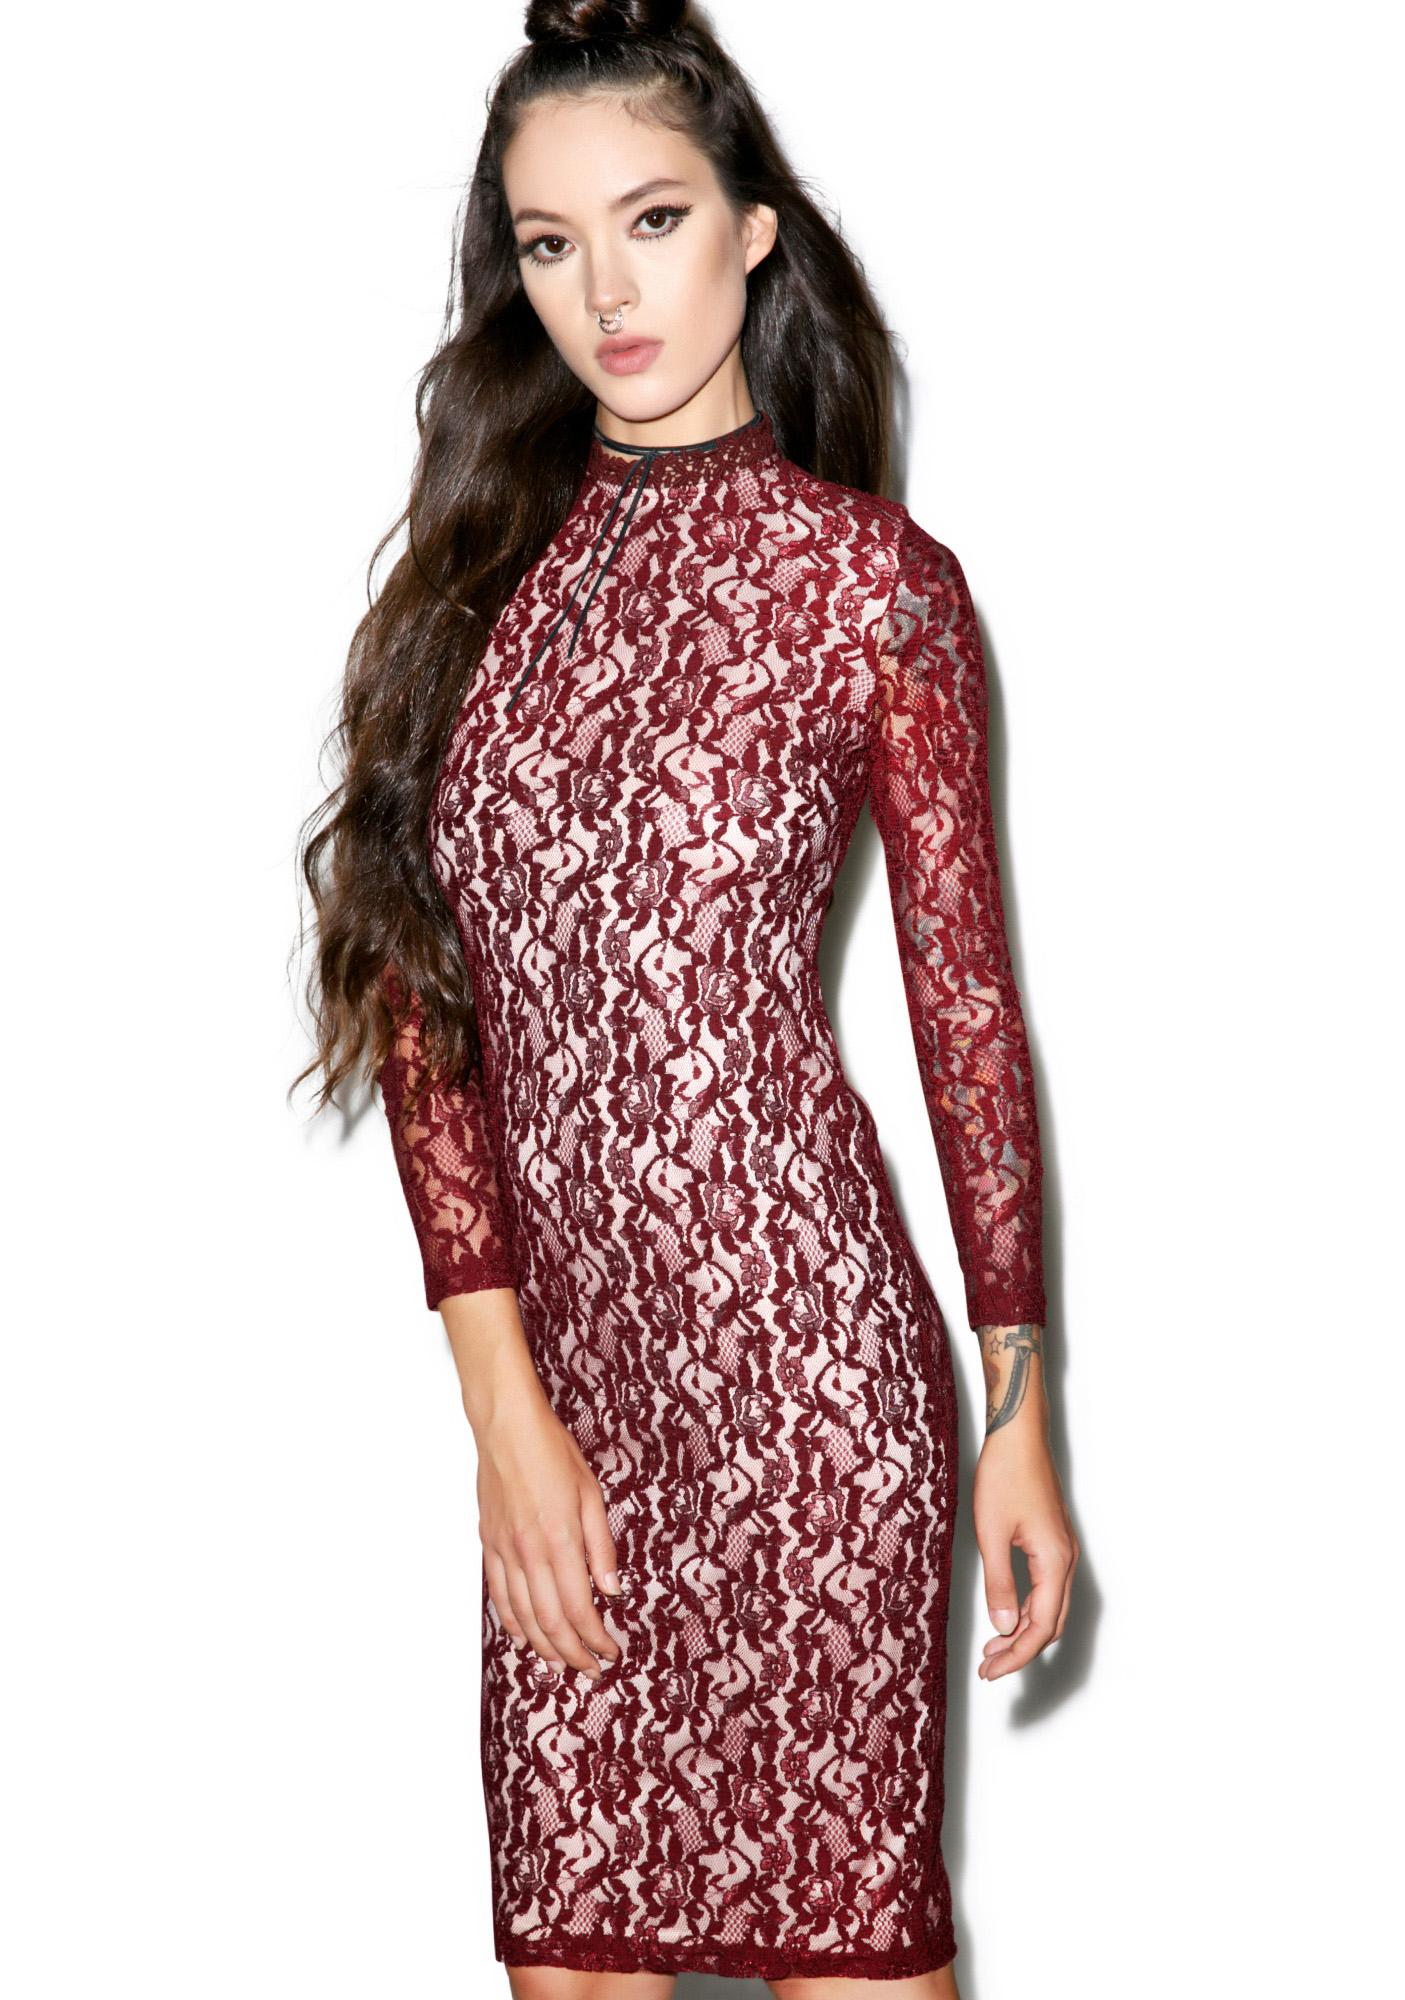 Glamorous Come Alive Dress